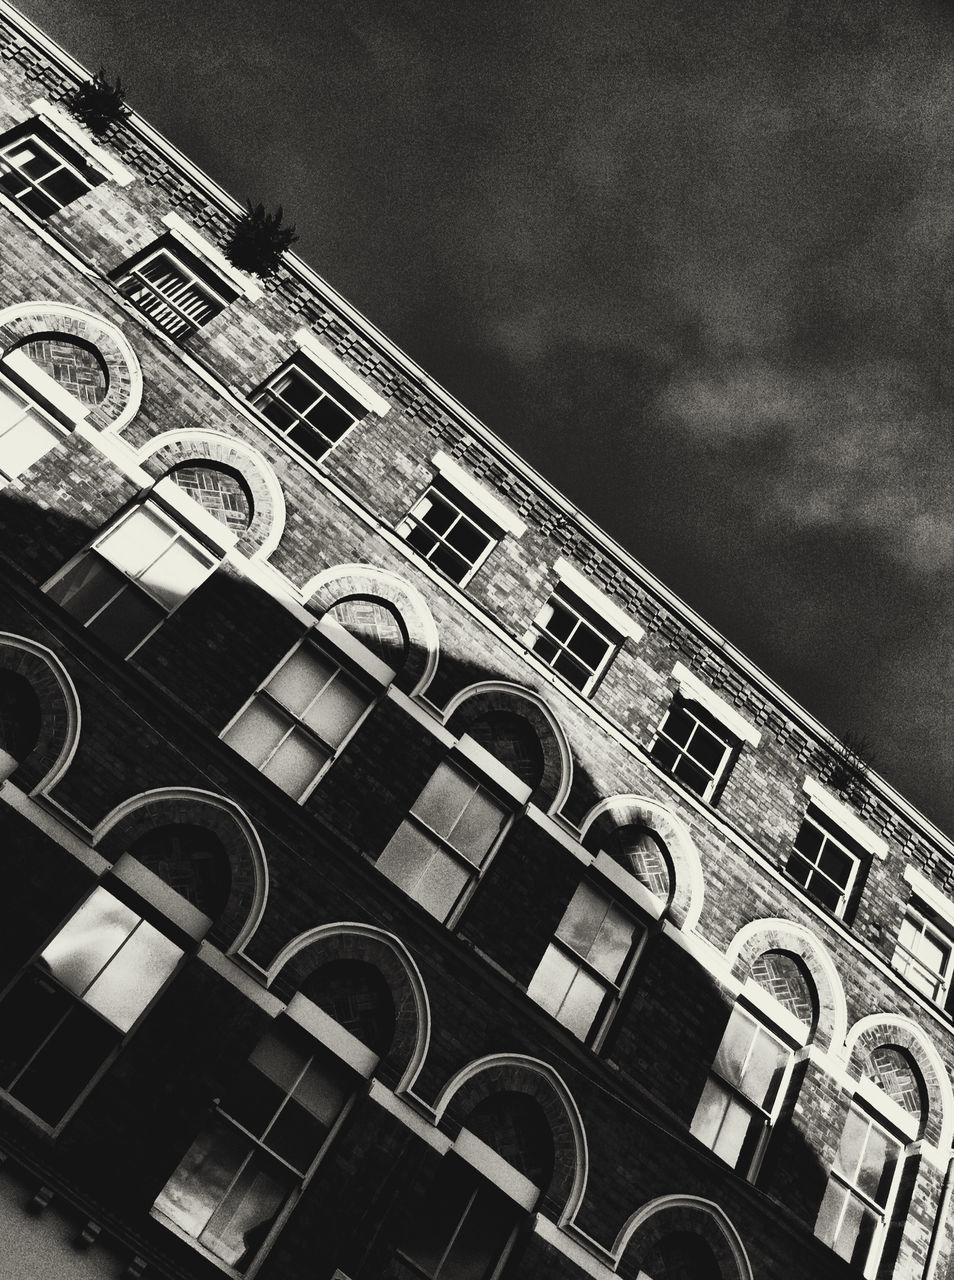 architecture, low angle view, building exterior, built structure, facade, outdoors, no people, window, day, sky, city